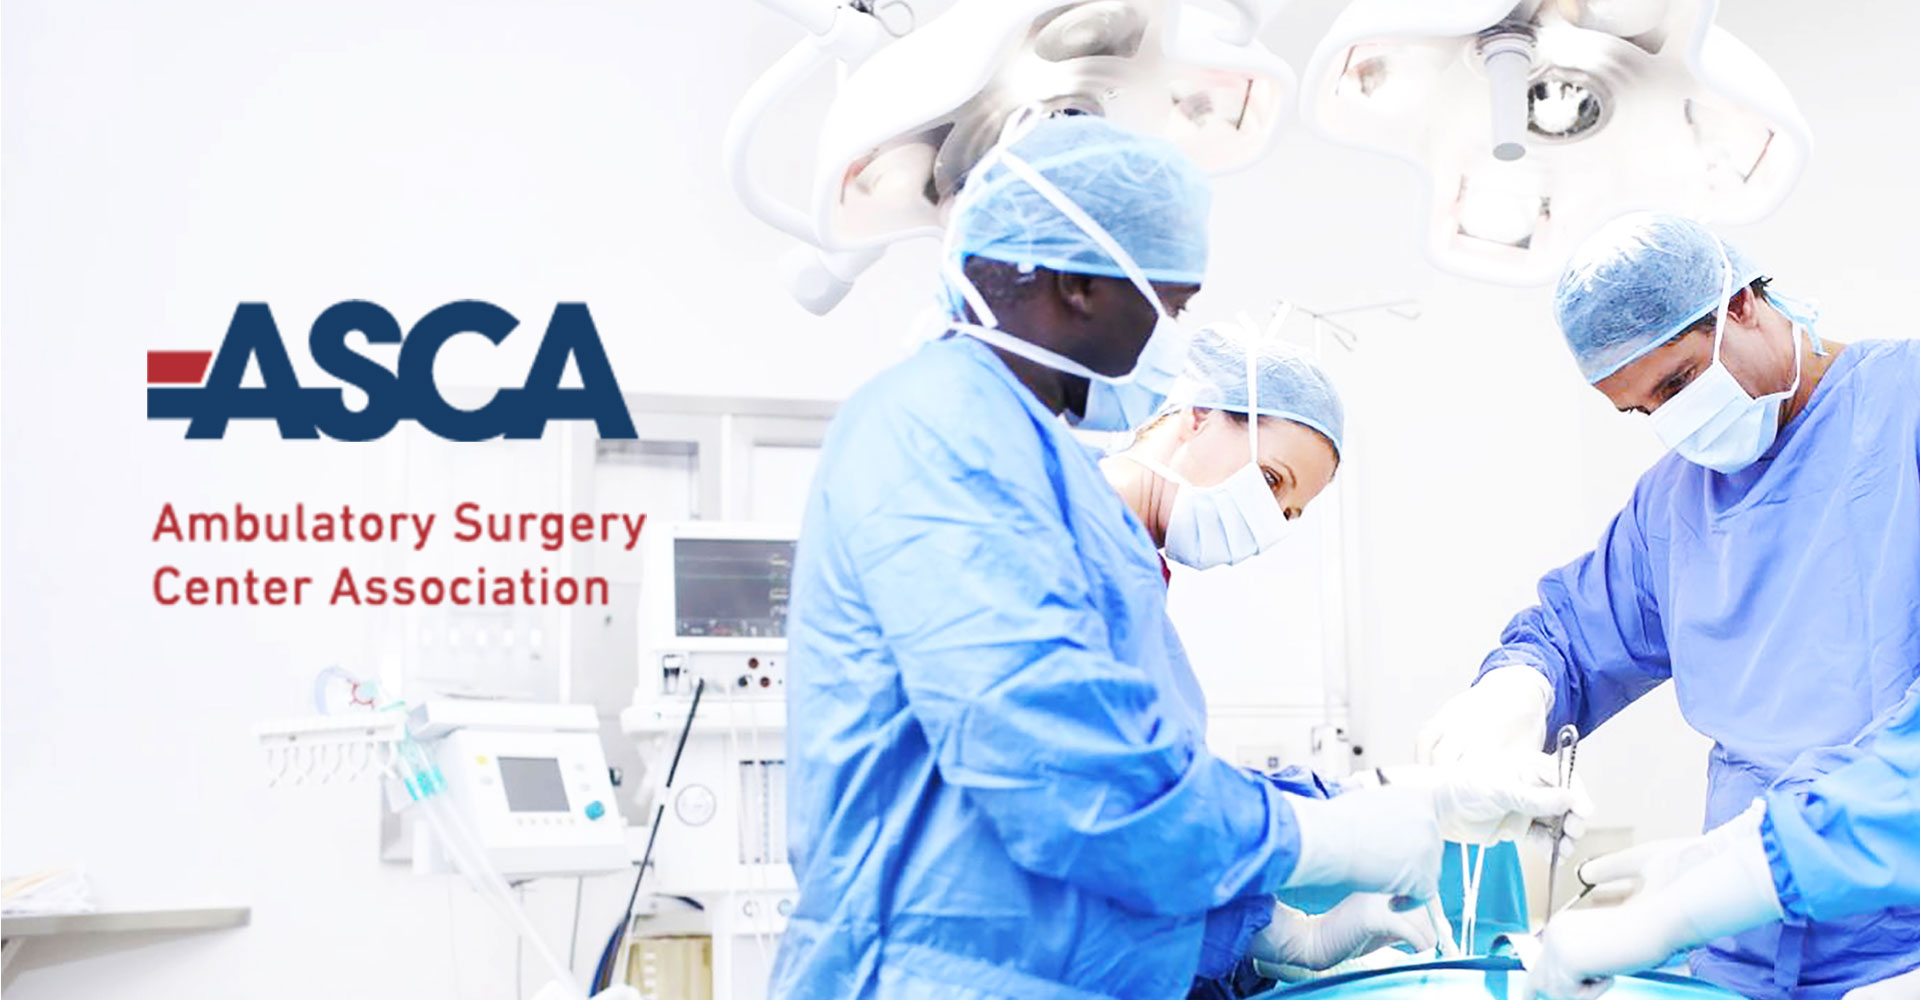 Fagron Sterile Services US supports ambulatory surgery centers across America